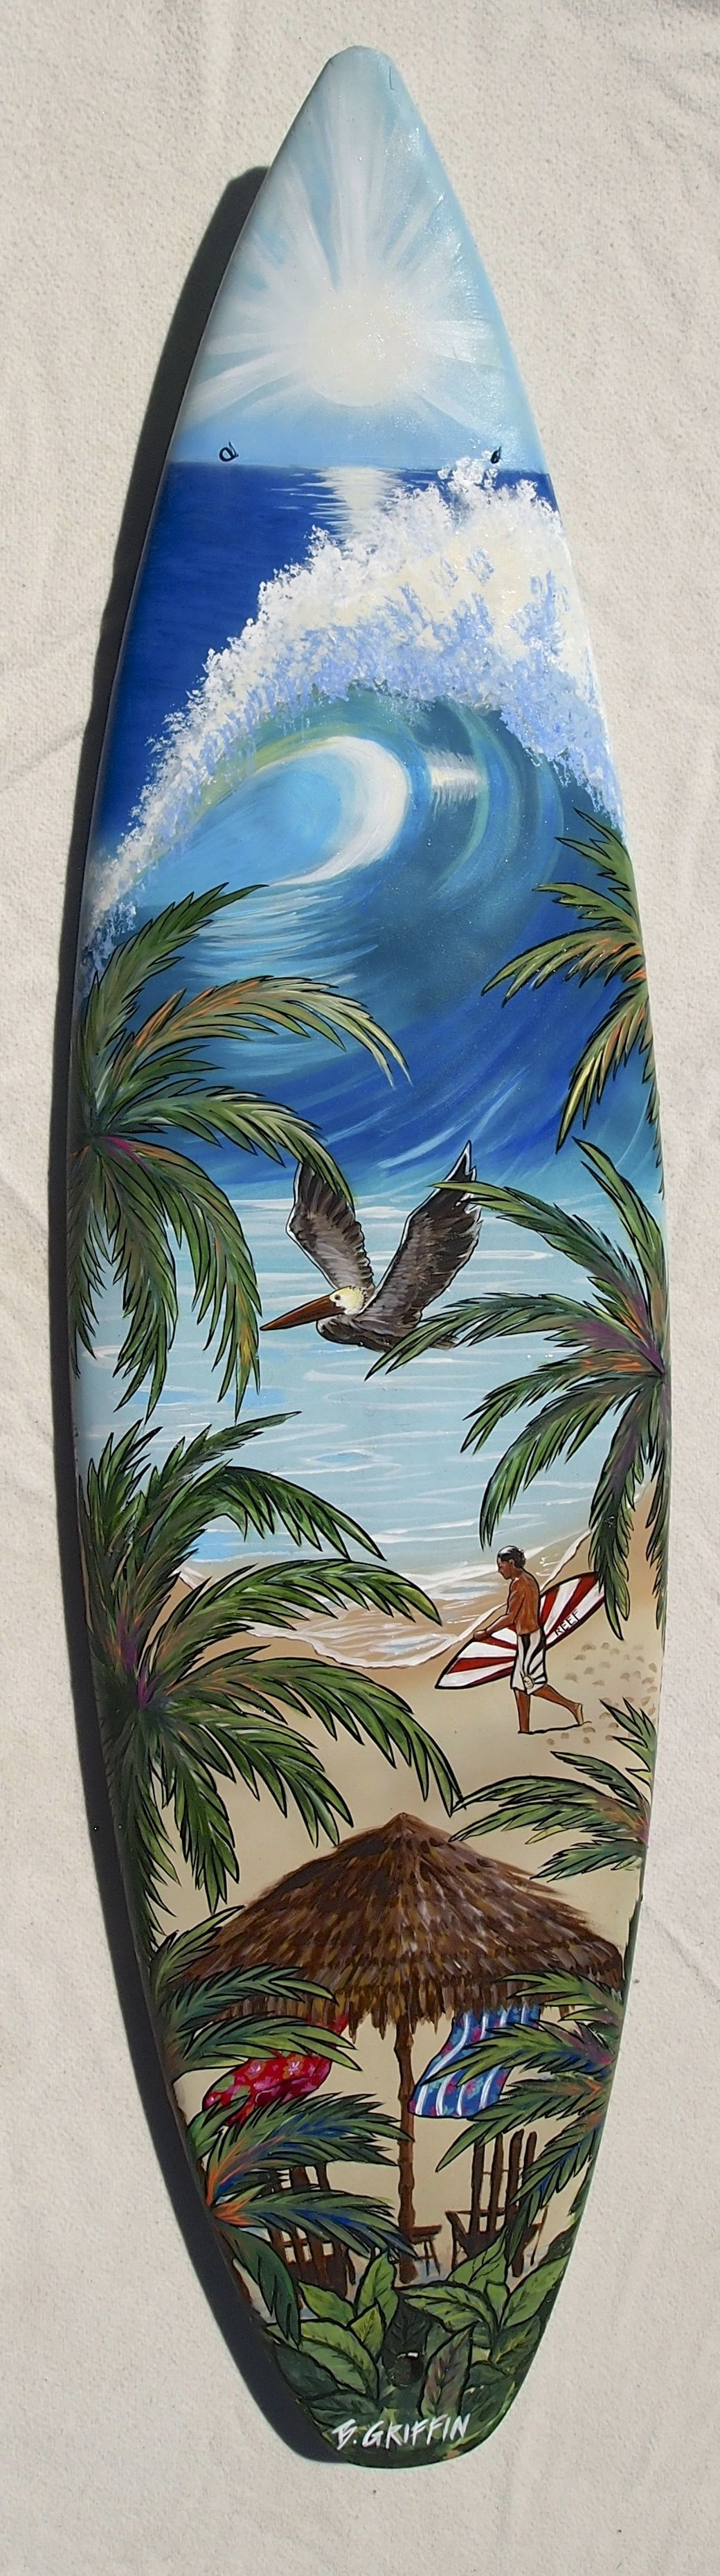 upright beach umbrella scene hand painted surfboard mural by b find this pin and more on surfboard wall art murals by kezsezmusic